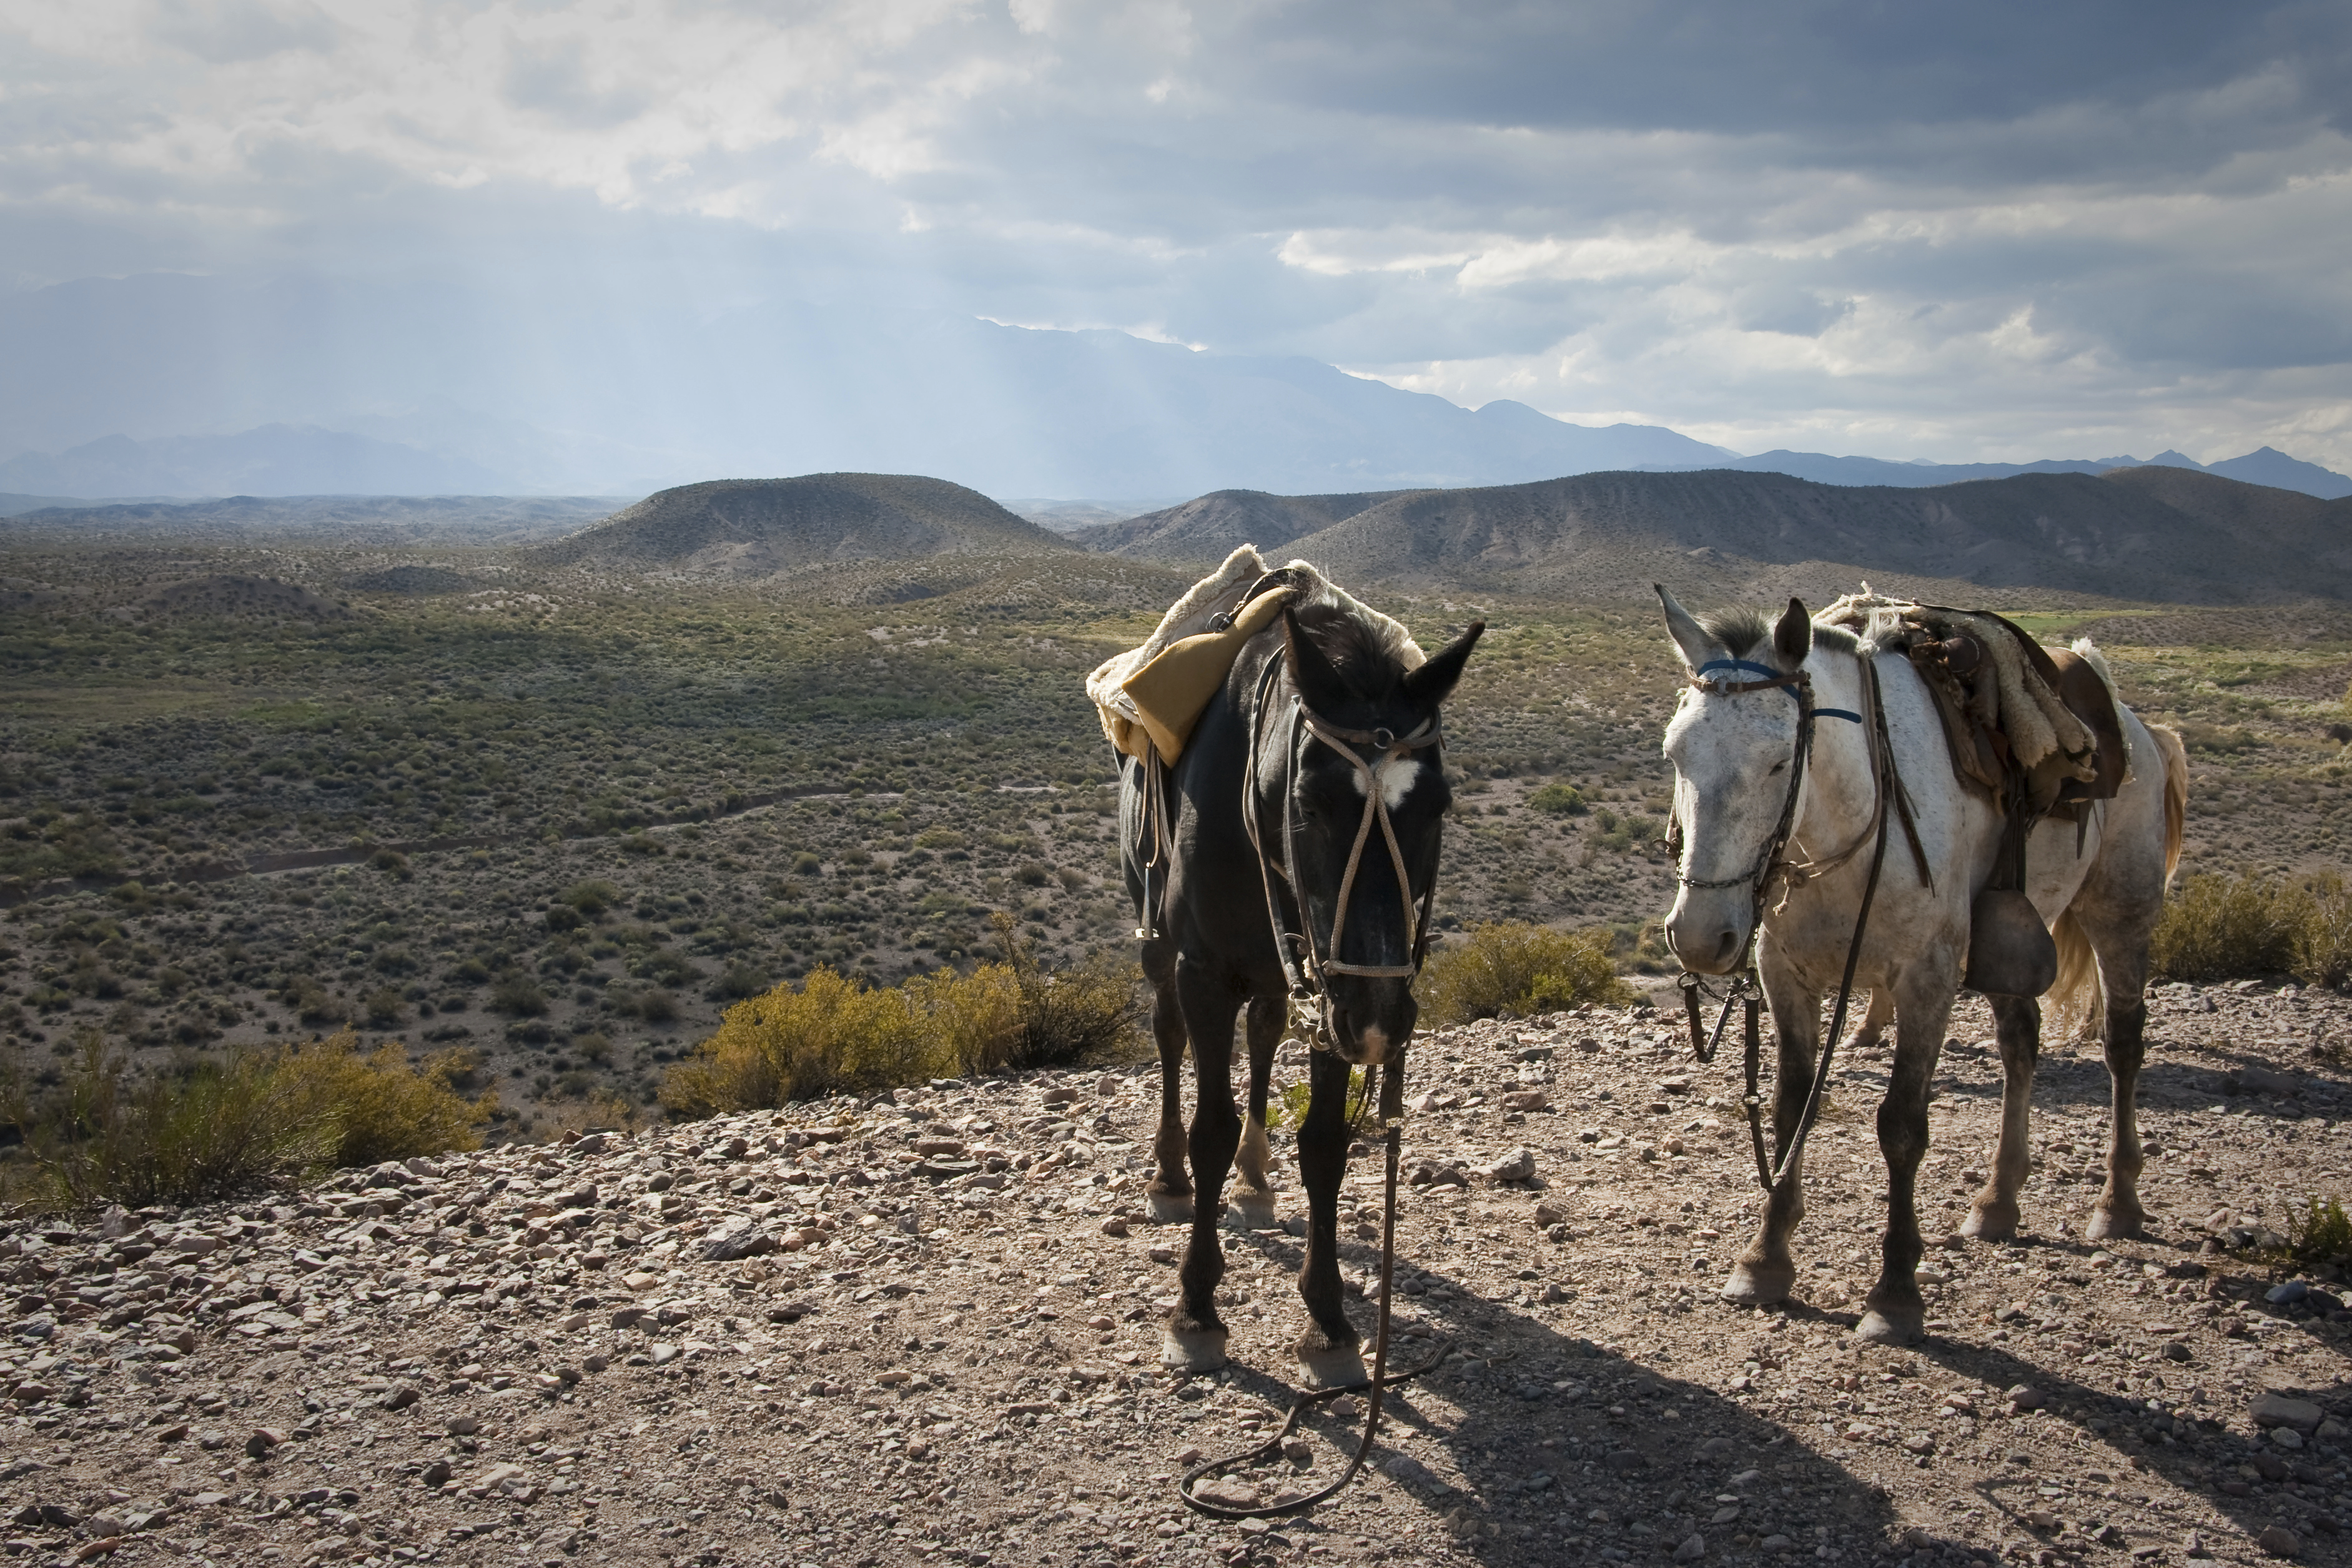 Horses in the Andes, Argentina